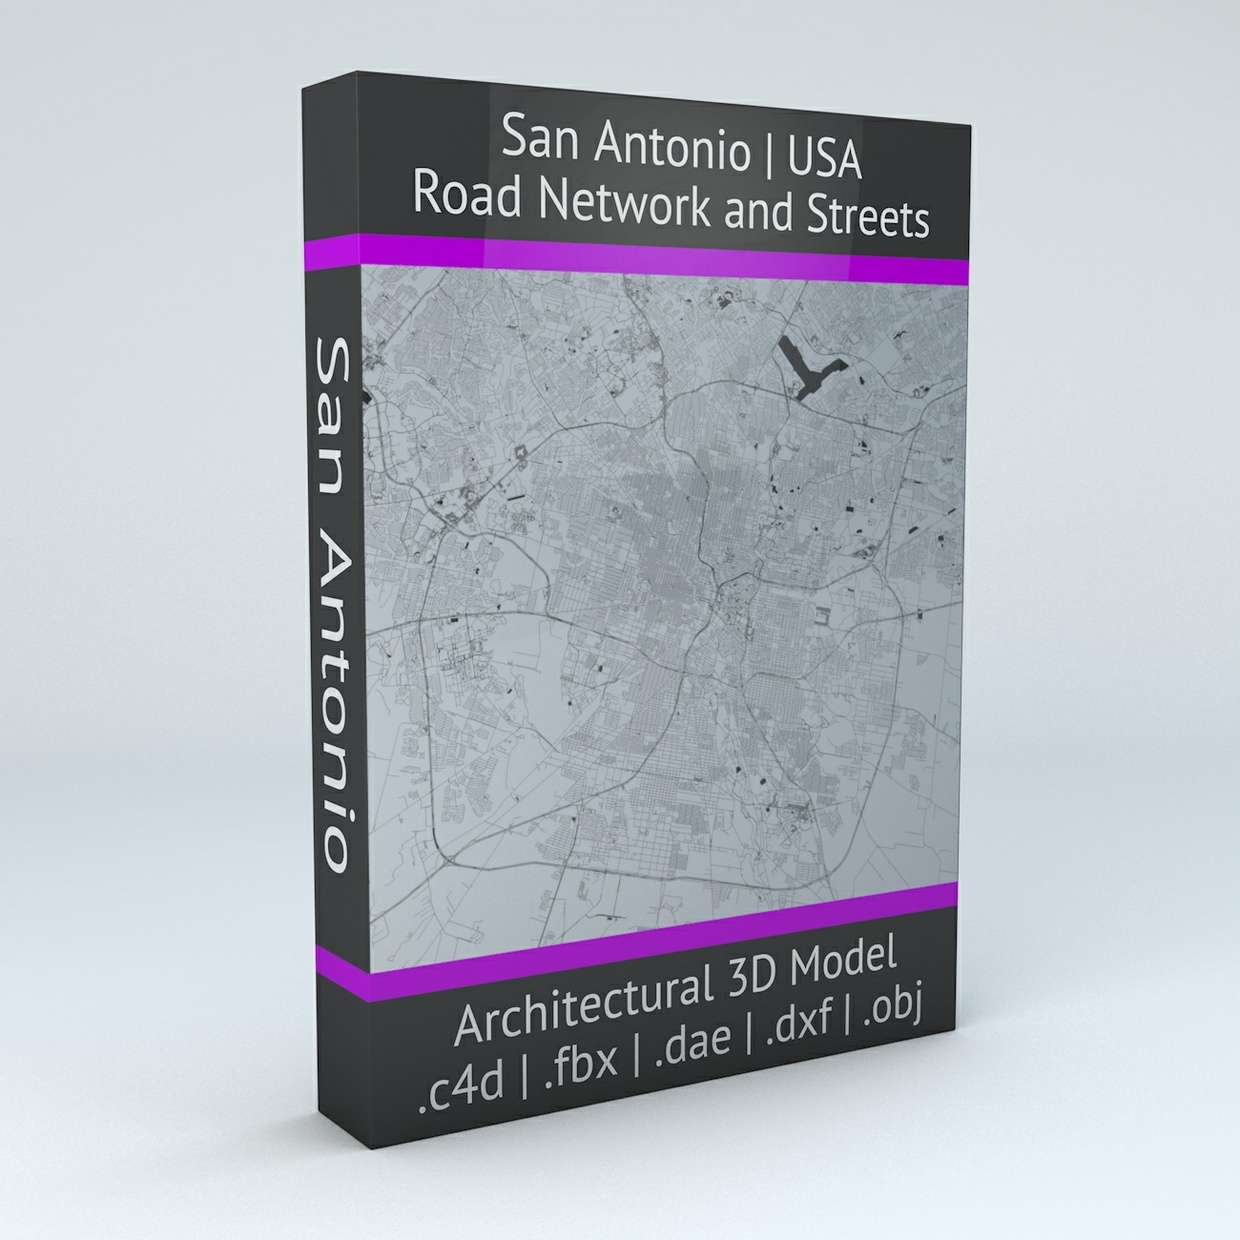 San Antonio Road Network Architectural 3D Model